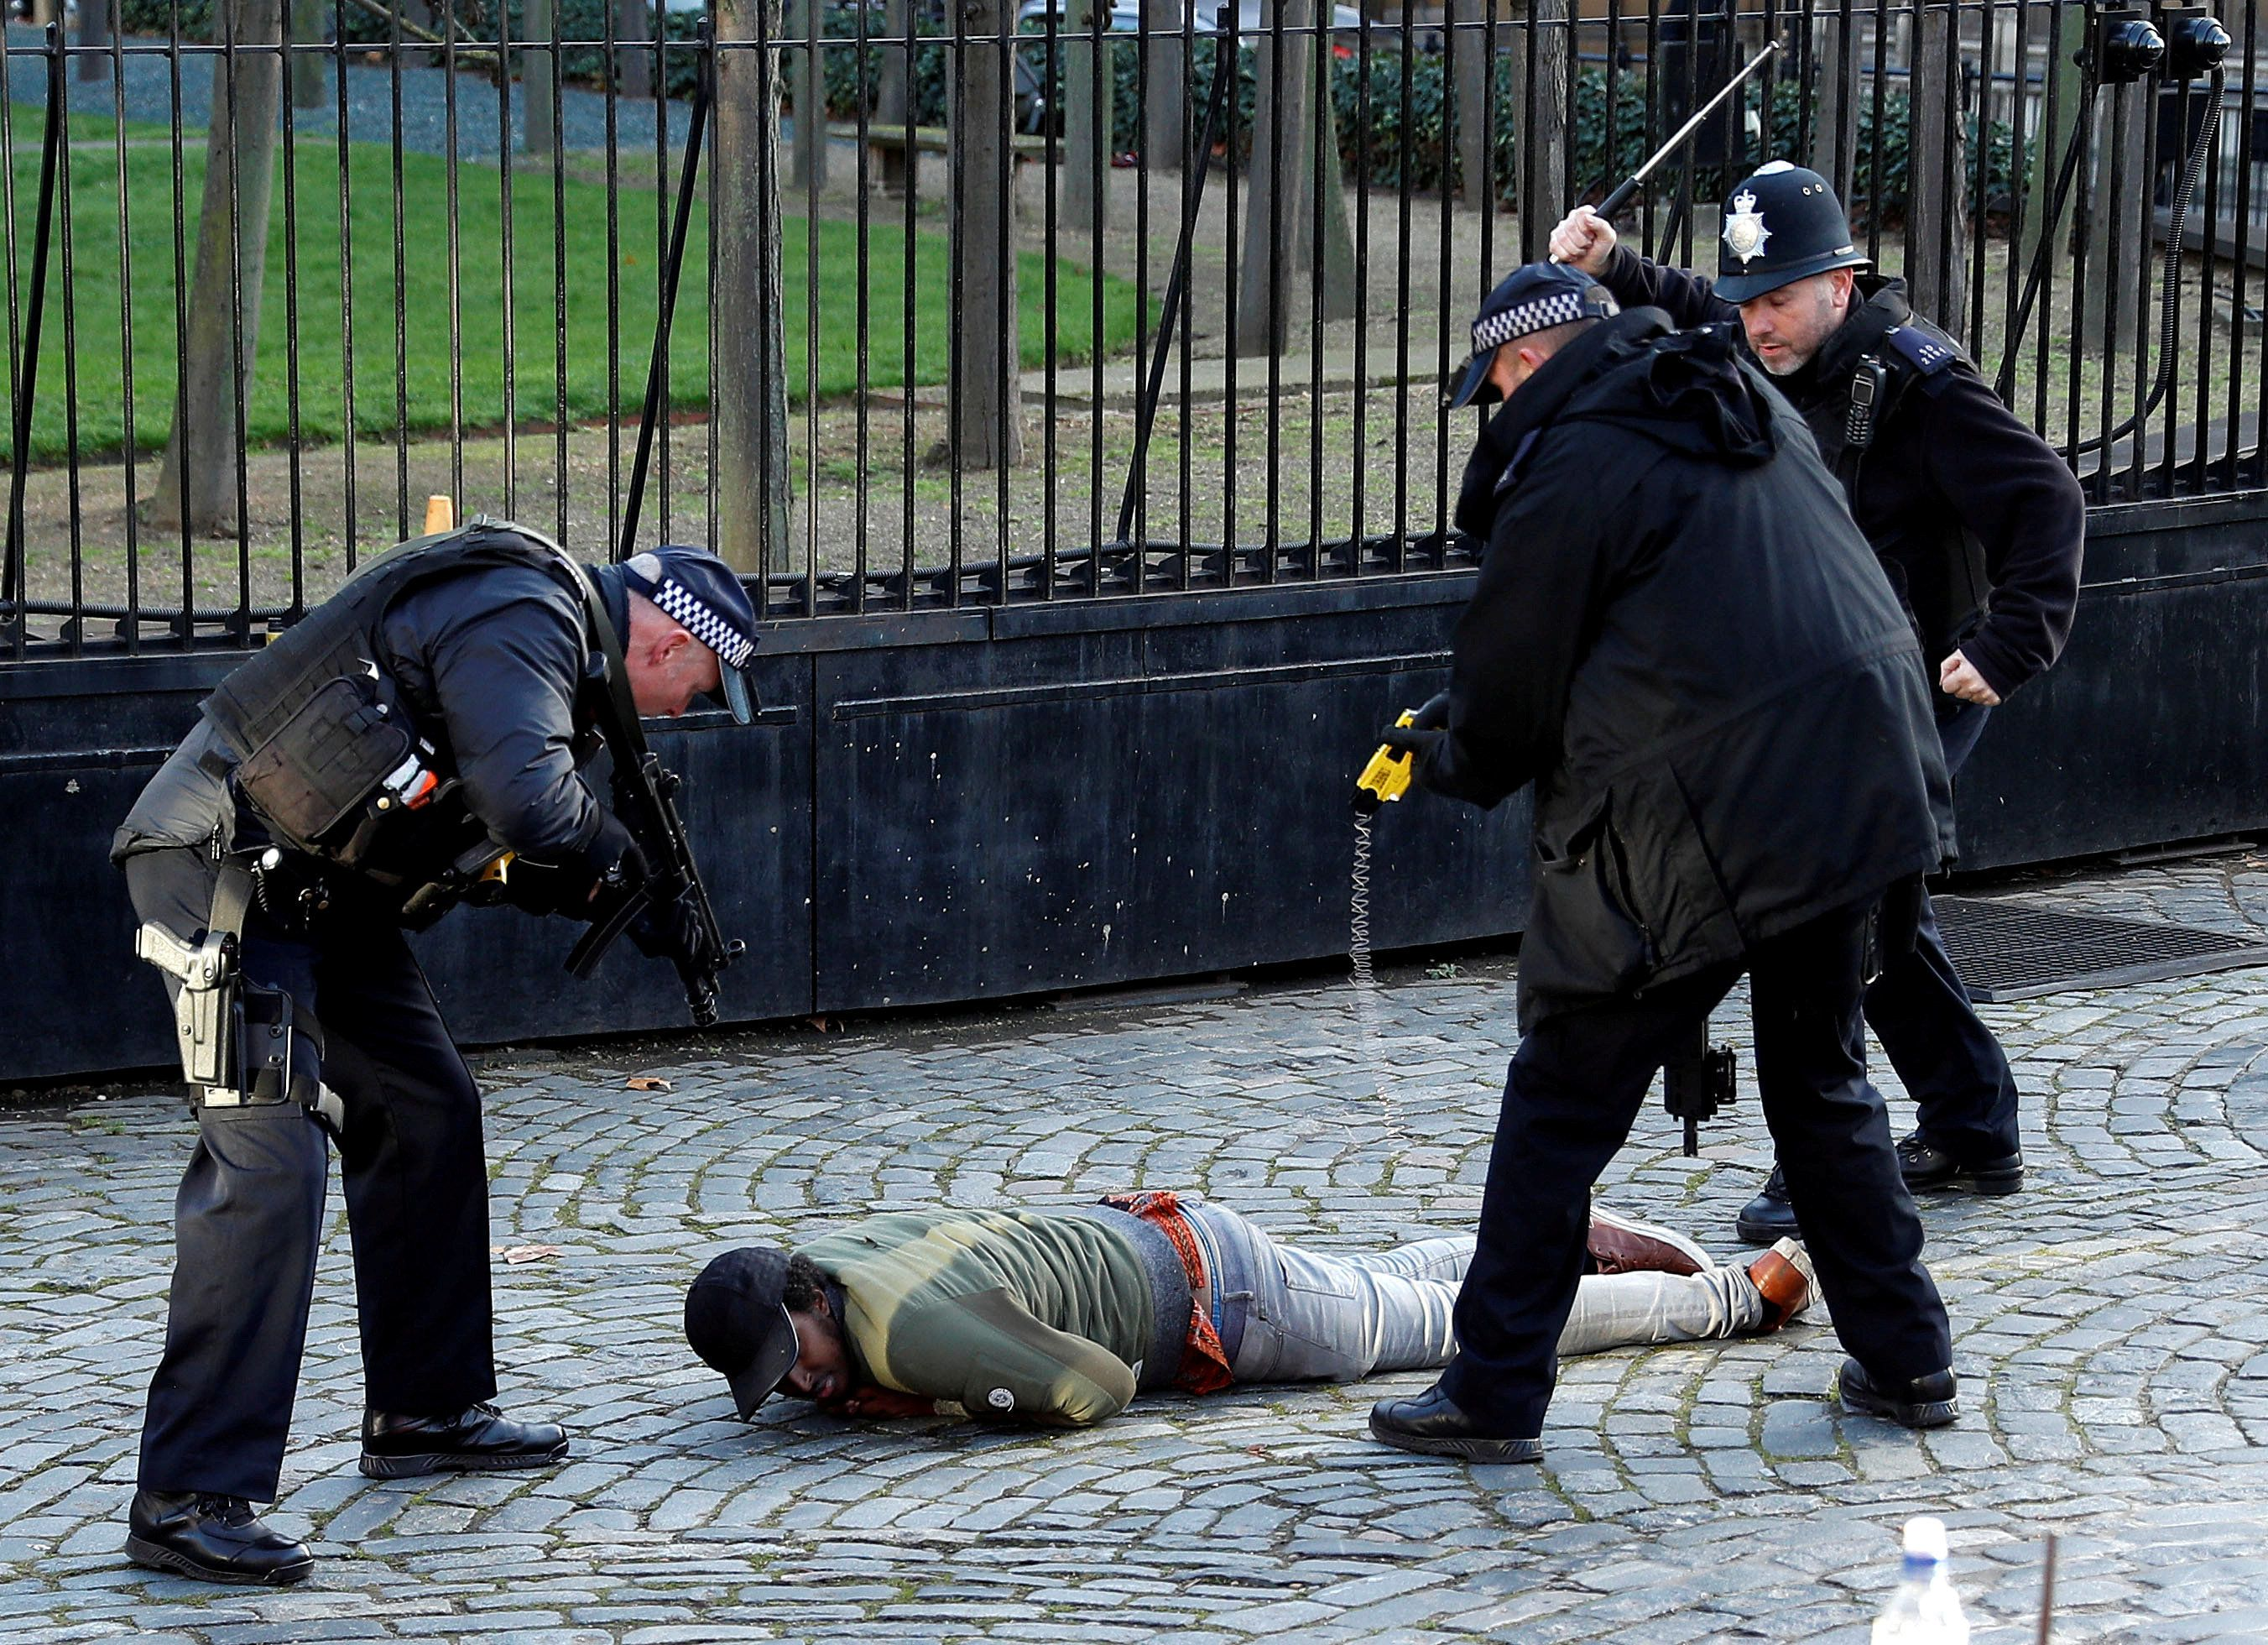 Police arrest man outside British Parliament for trespassing